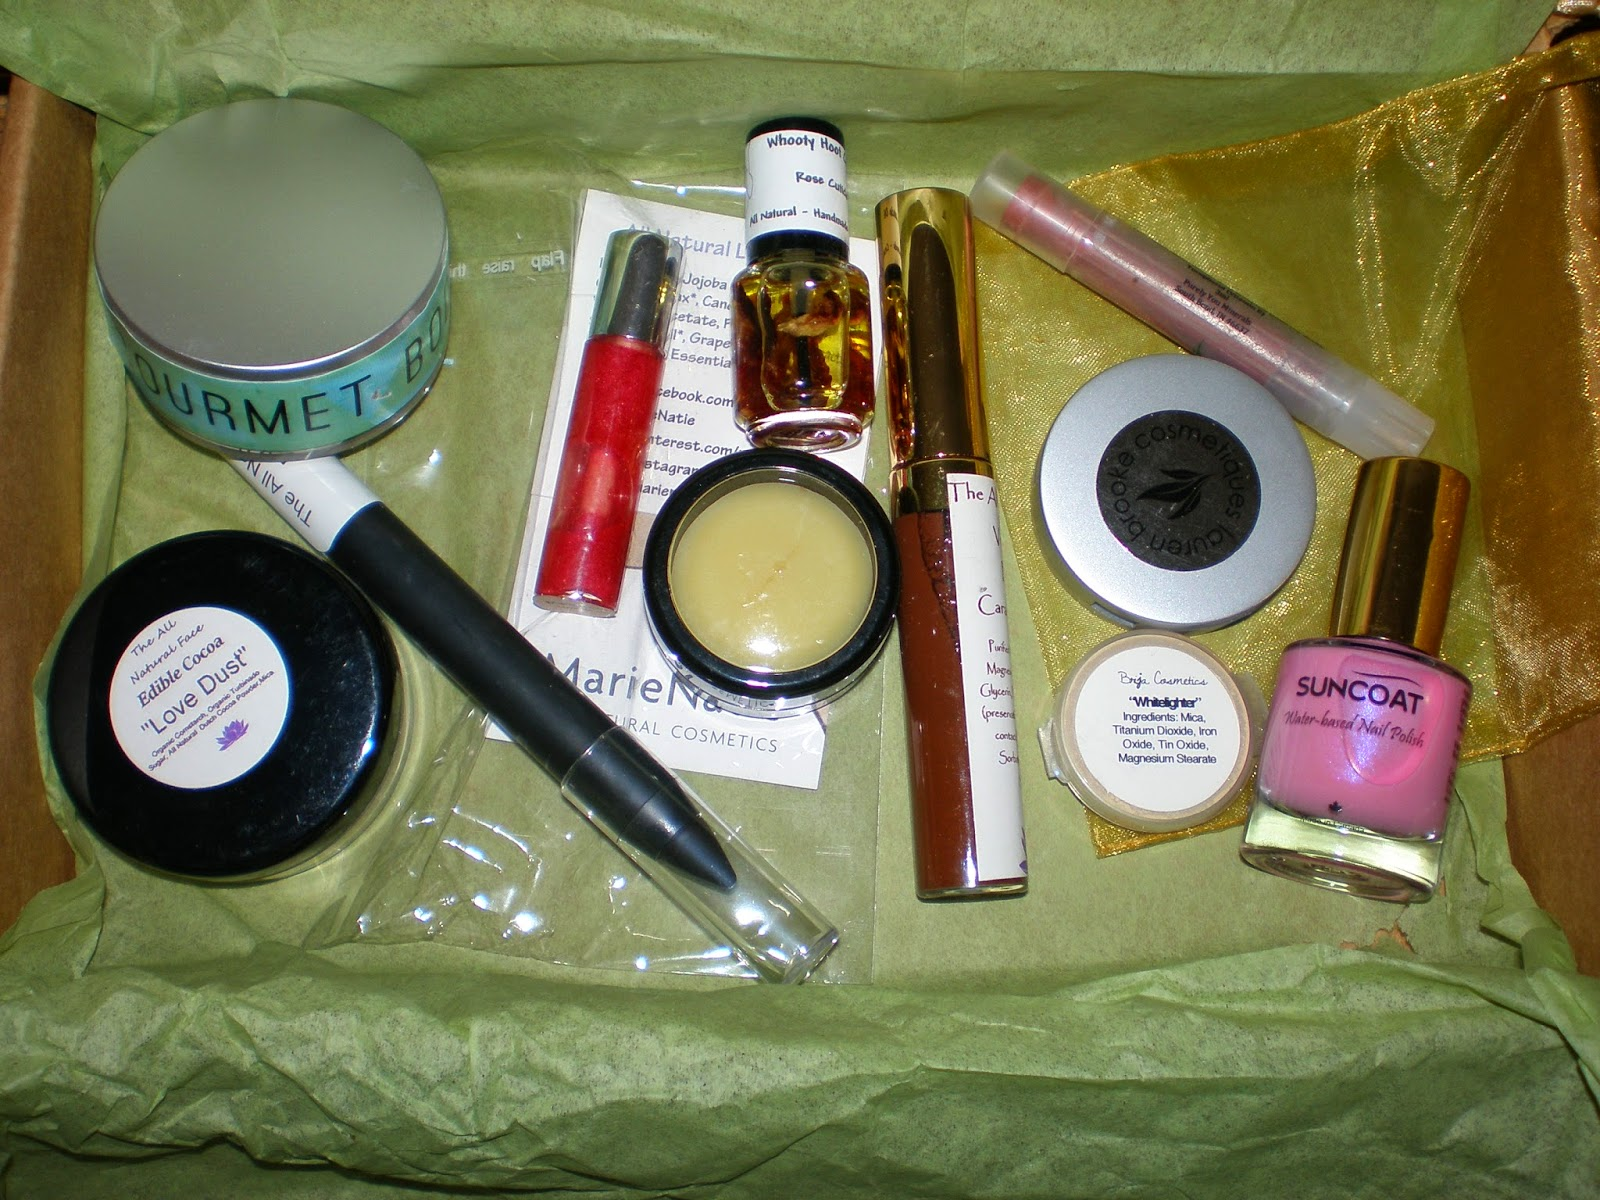 Contents of the Eco Emi Cosmetics box